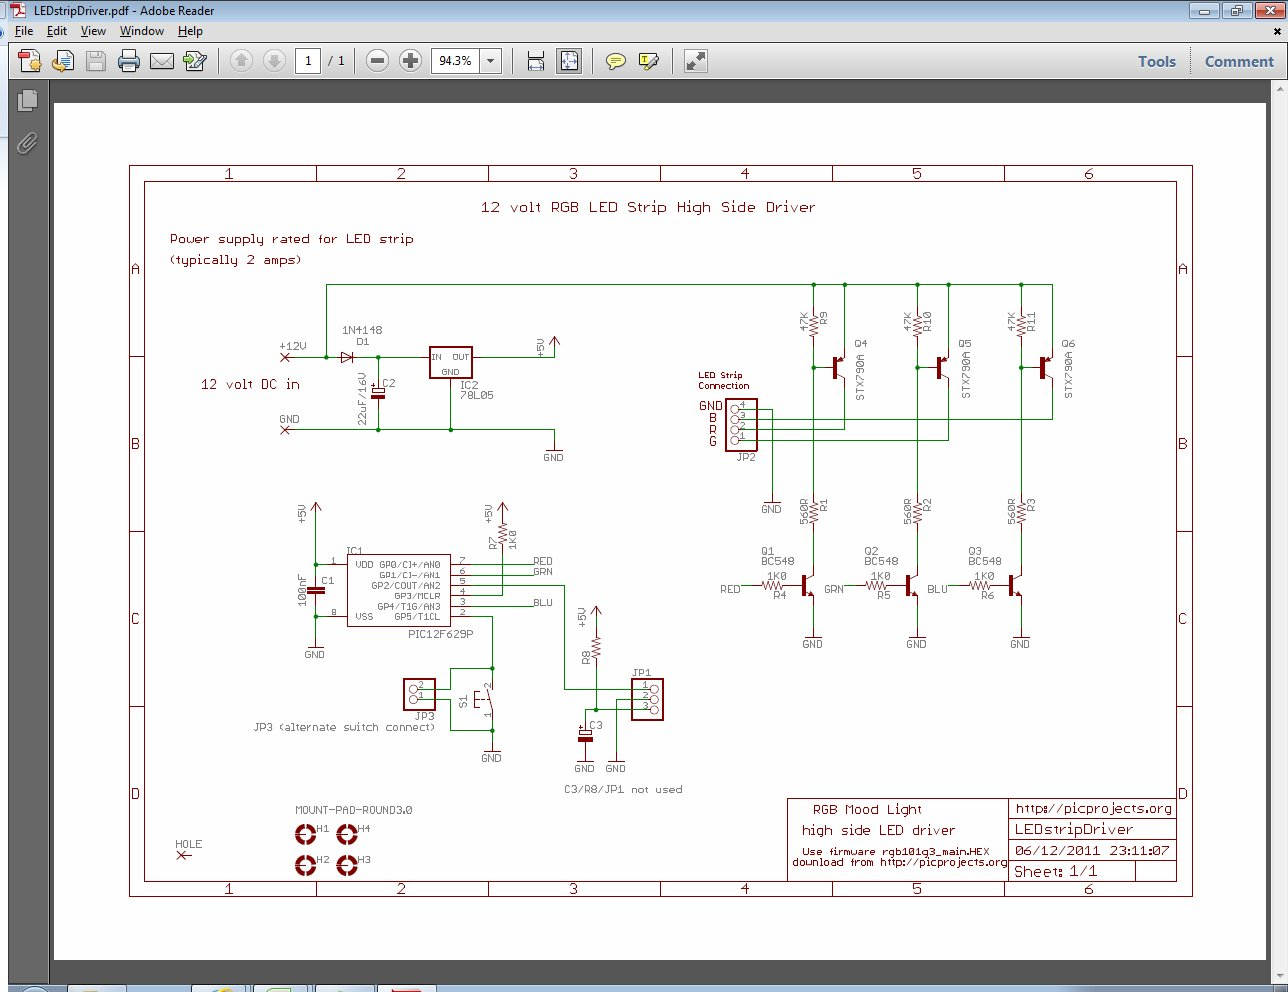 Assembled board from schematic #1